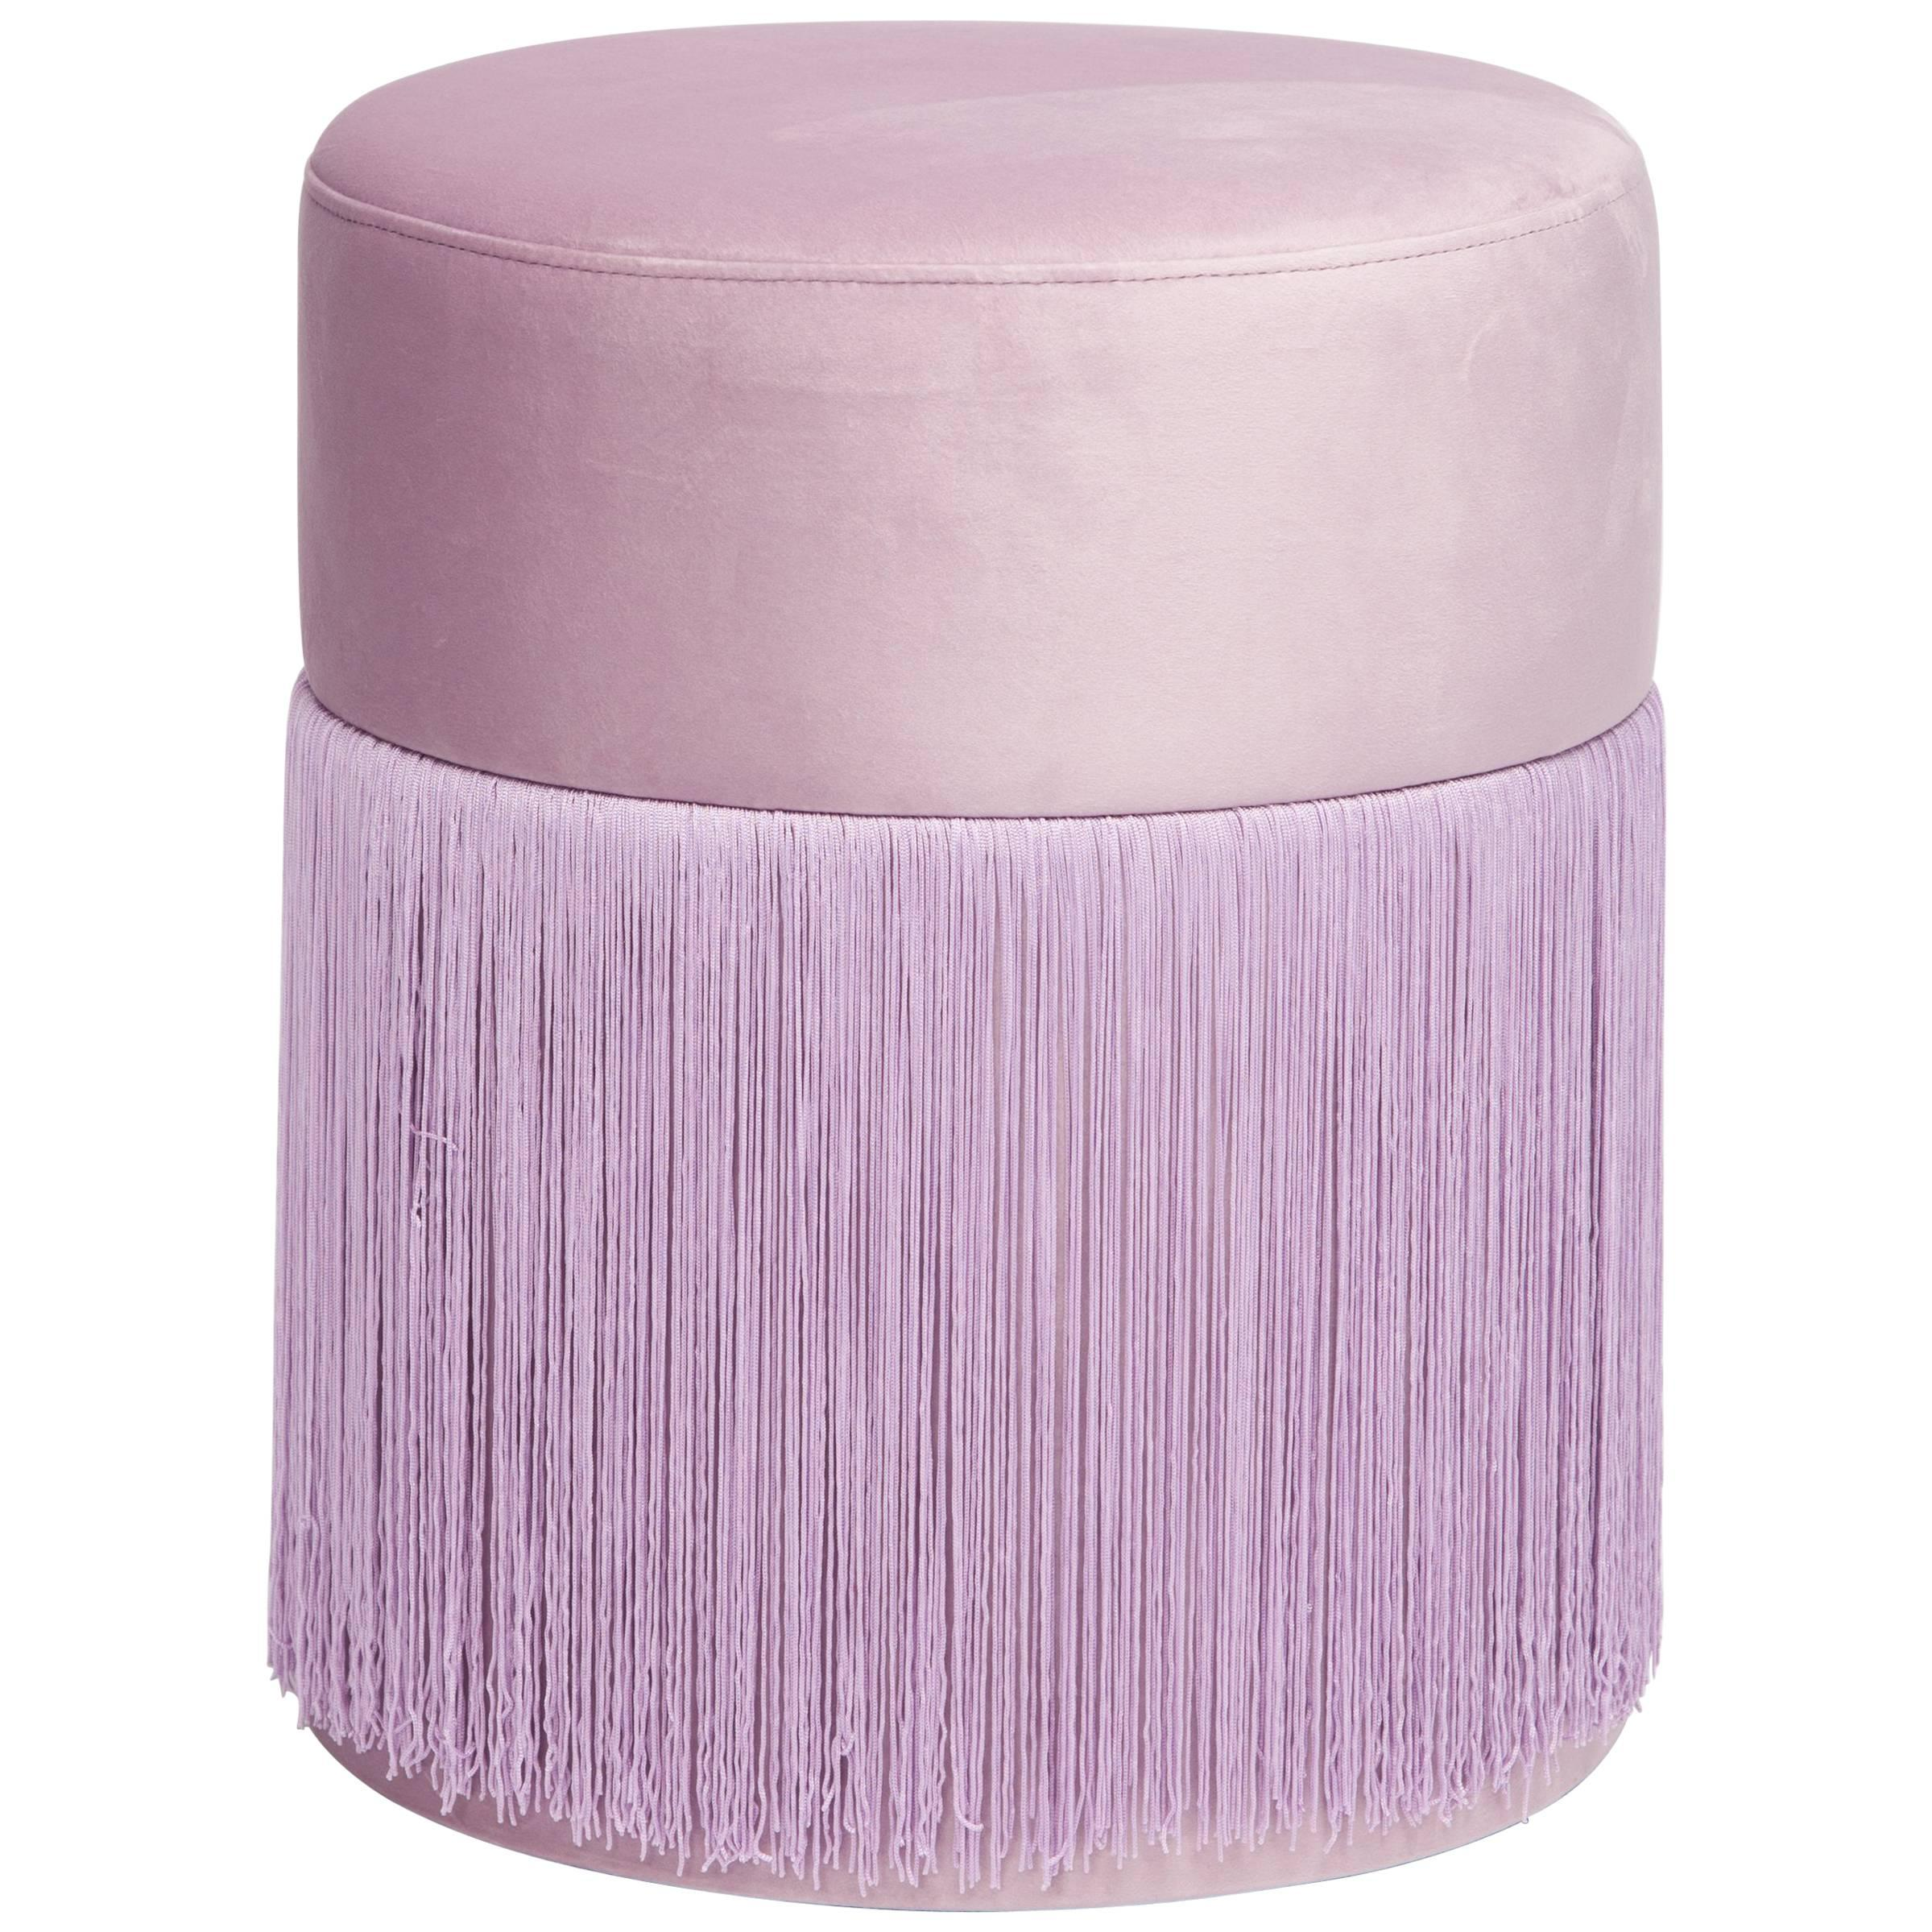 Pouf Pill Lilac in Velvet Upholstery with Fringes